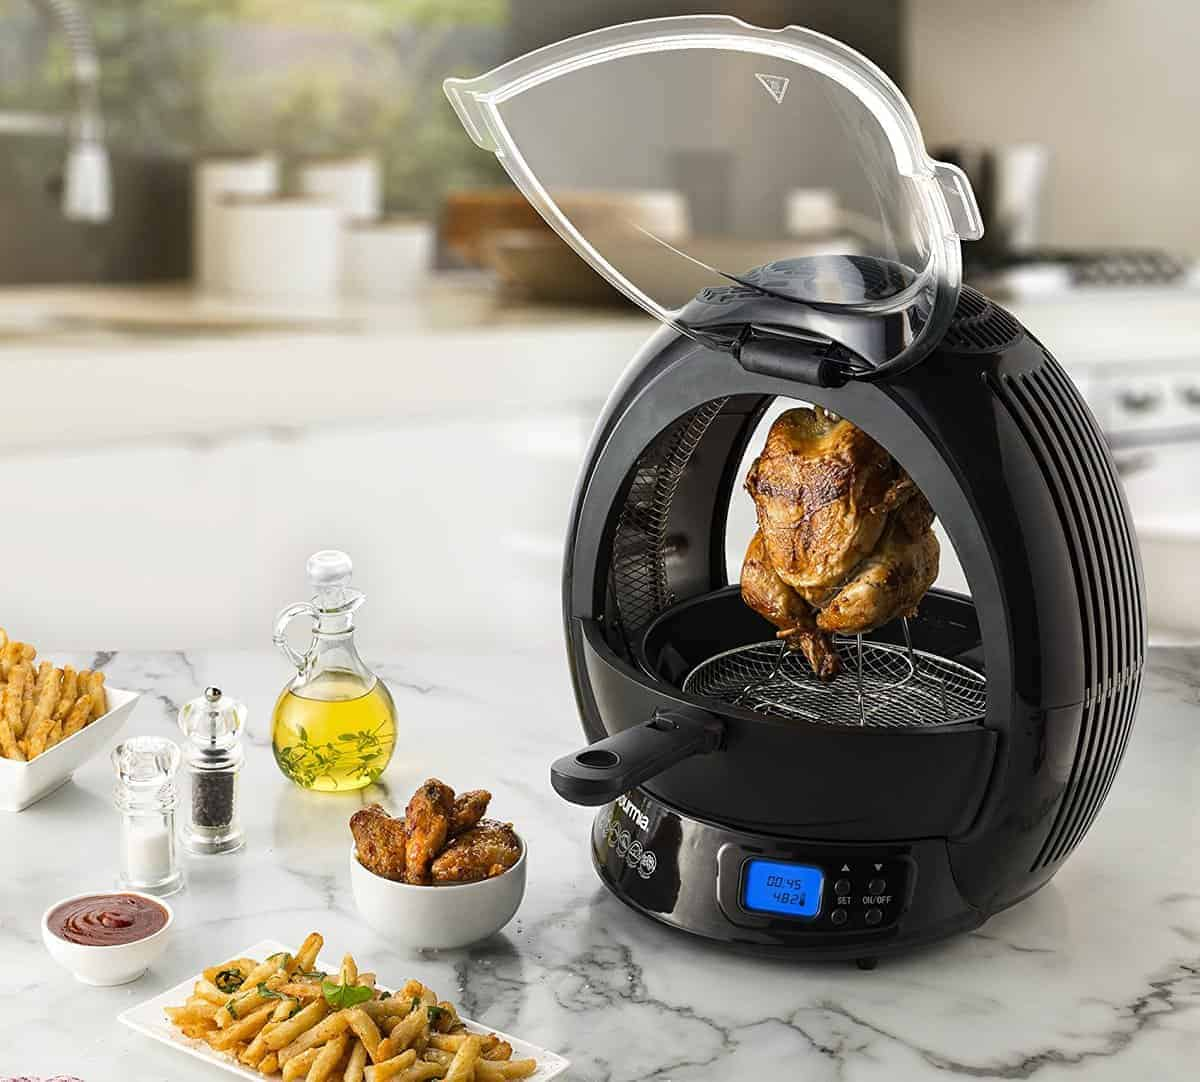 Gourmia 9 In 1 Air Fryer & Multicooker Giveaway + September 2016 Monthly Income Report